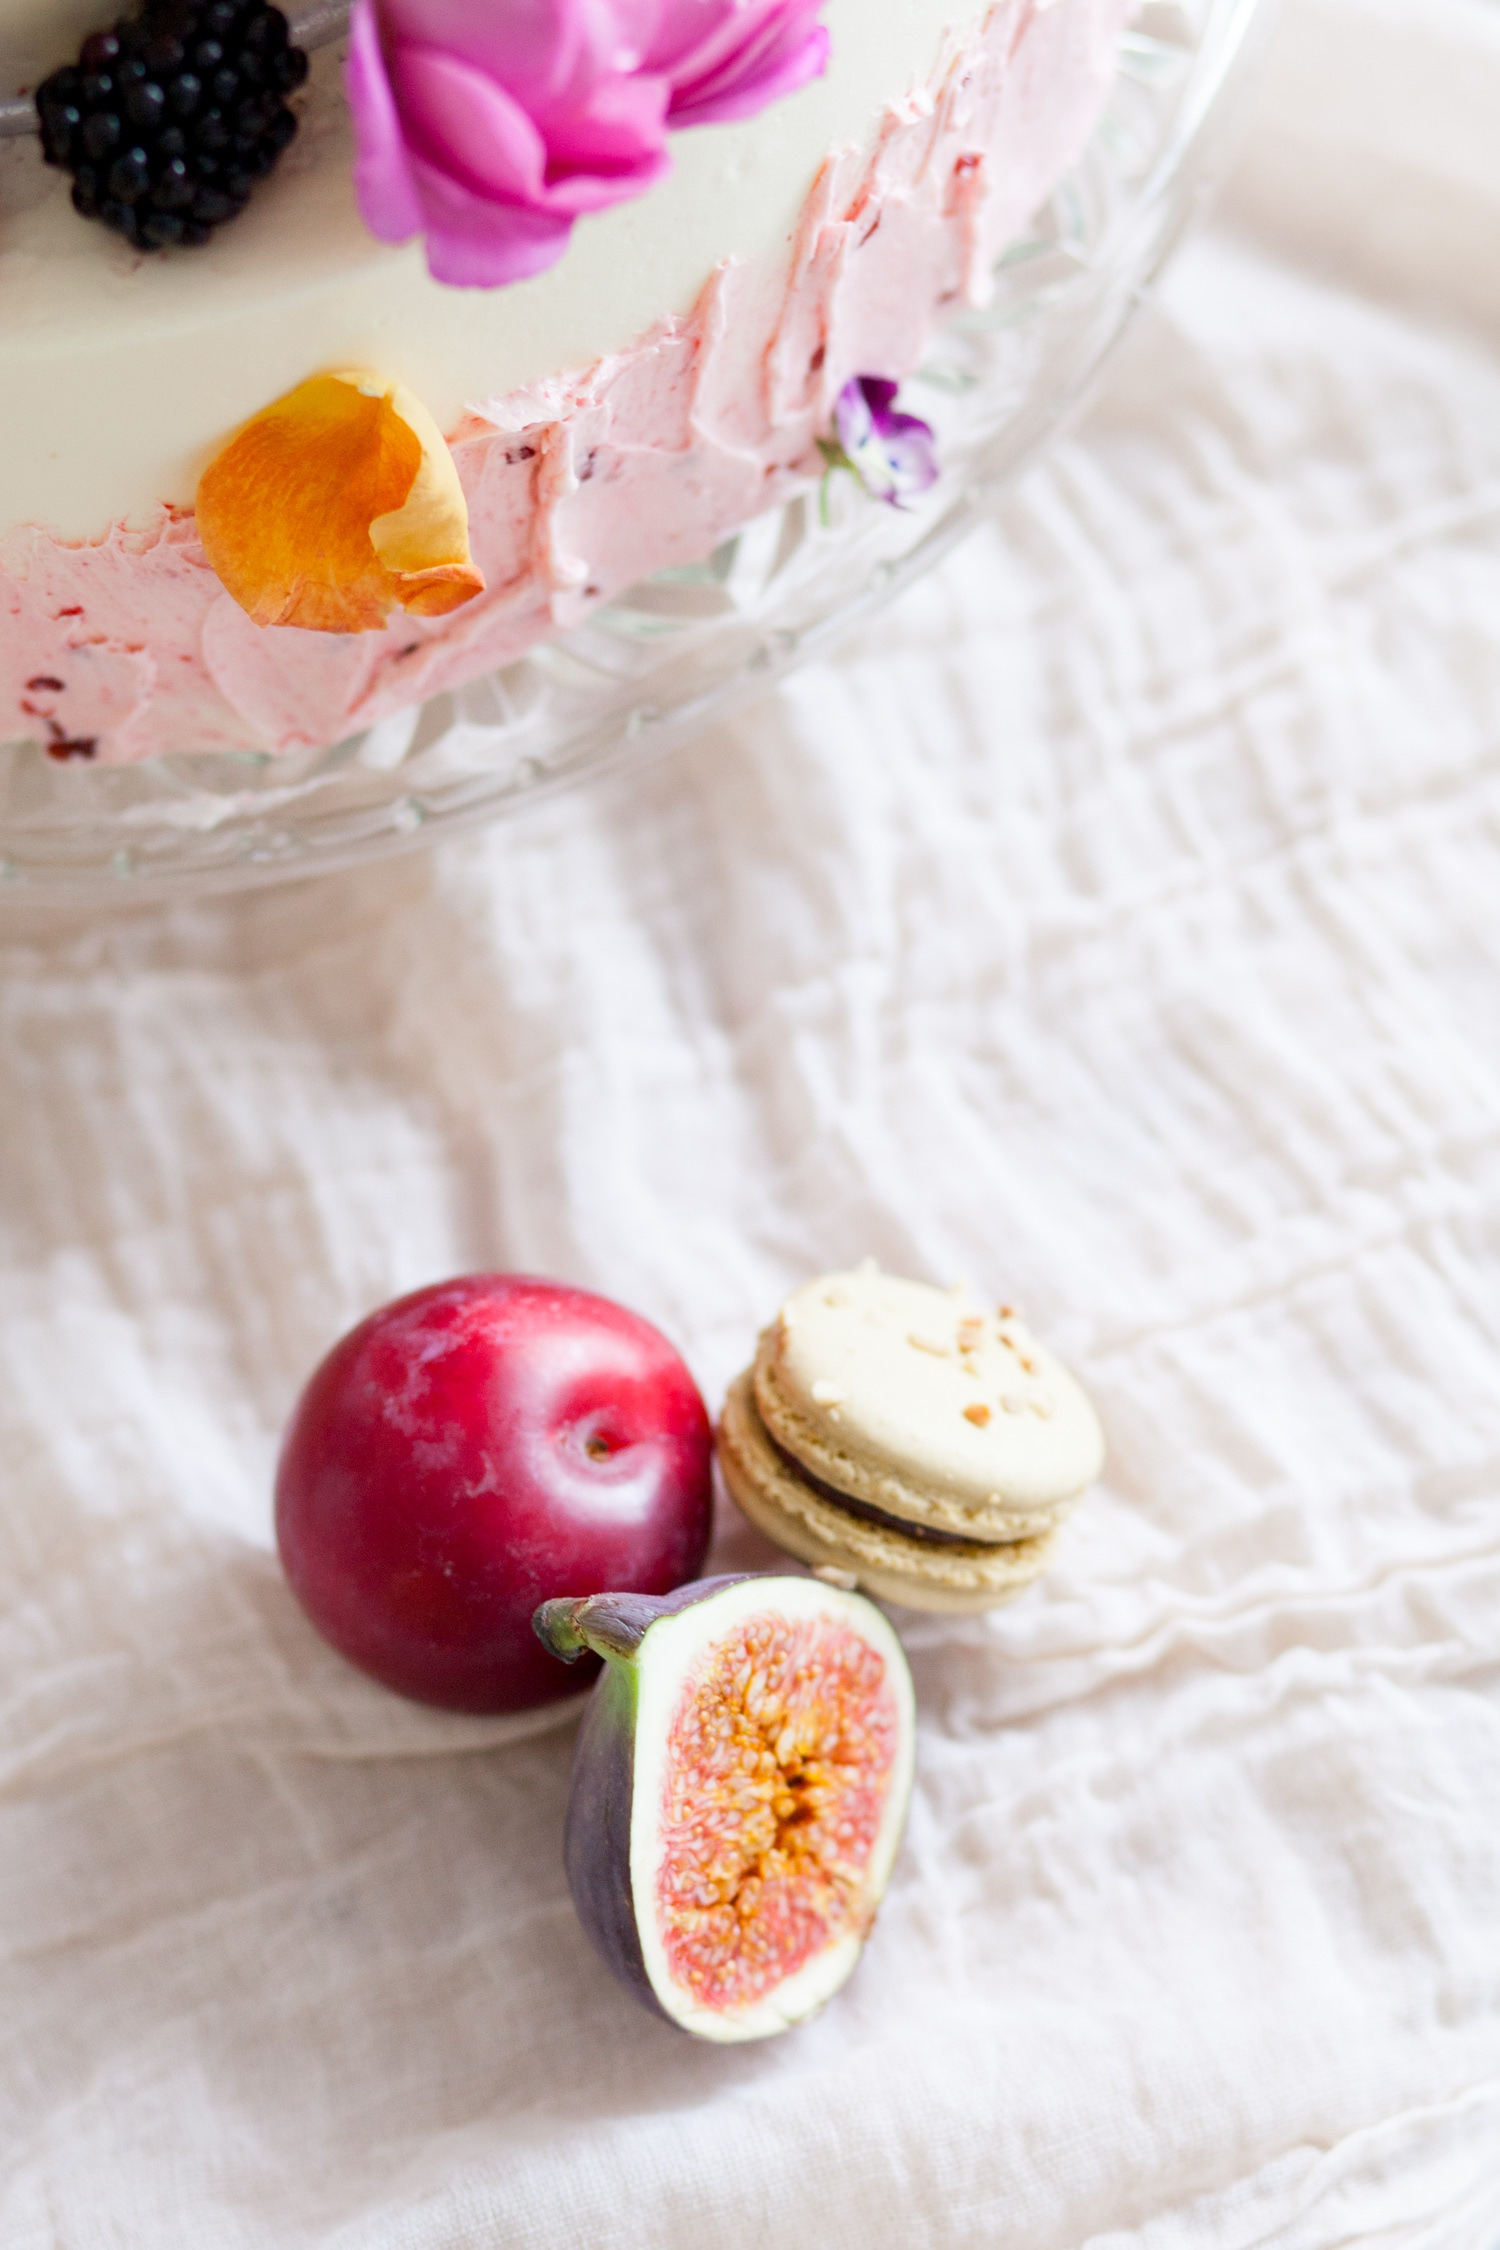 Personal branding shoot for Milk Street Kitchen - figs and plums